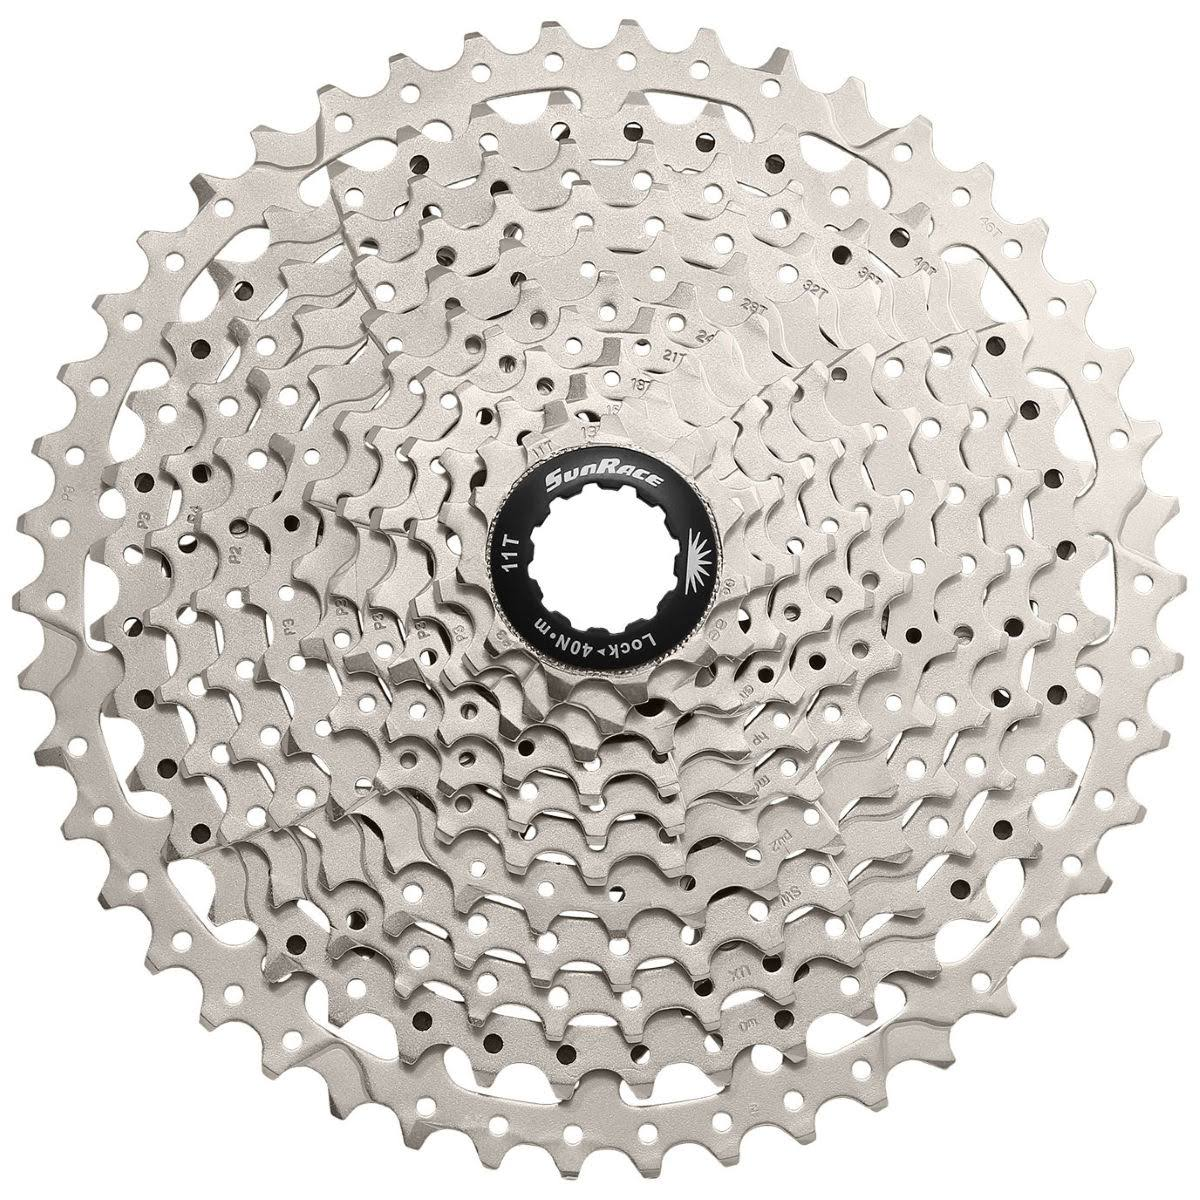 Sunrace Bicycle Cassette - Silver, 11-40T, 11 Speed